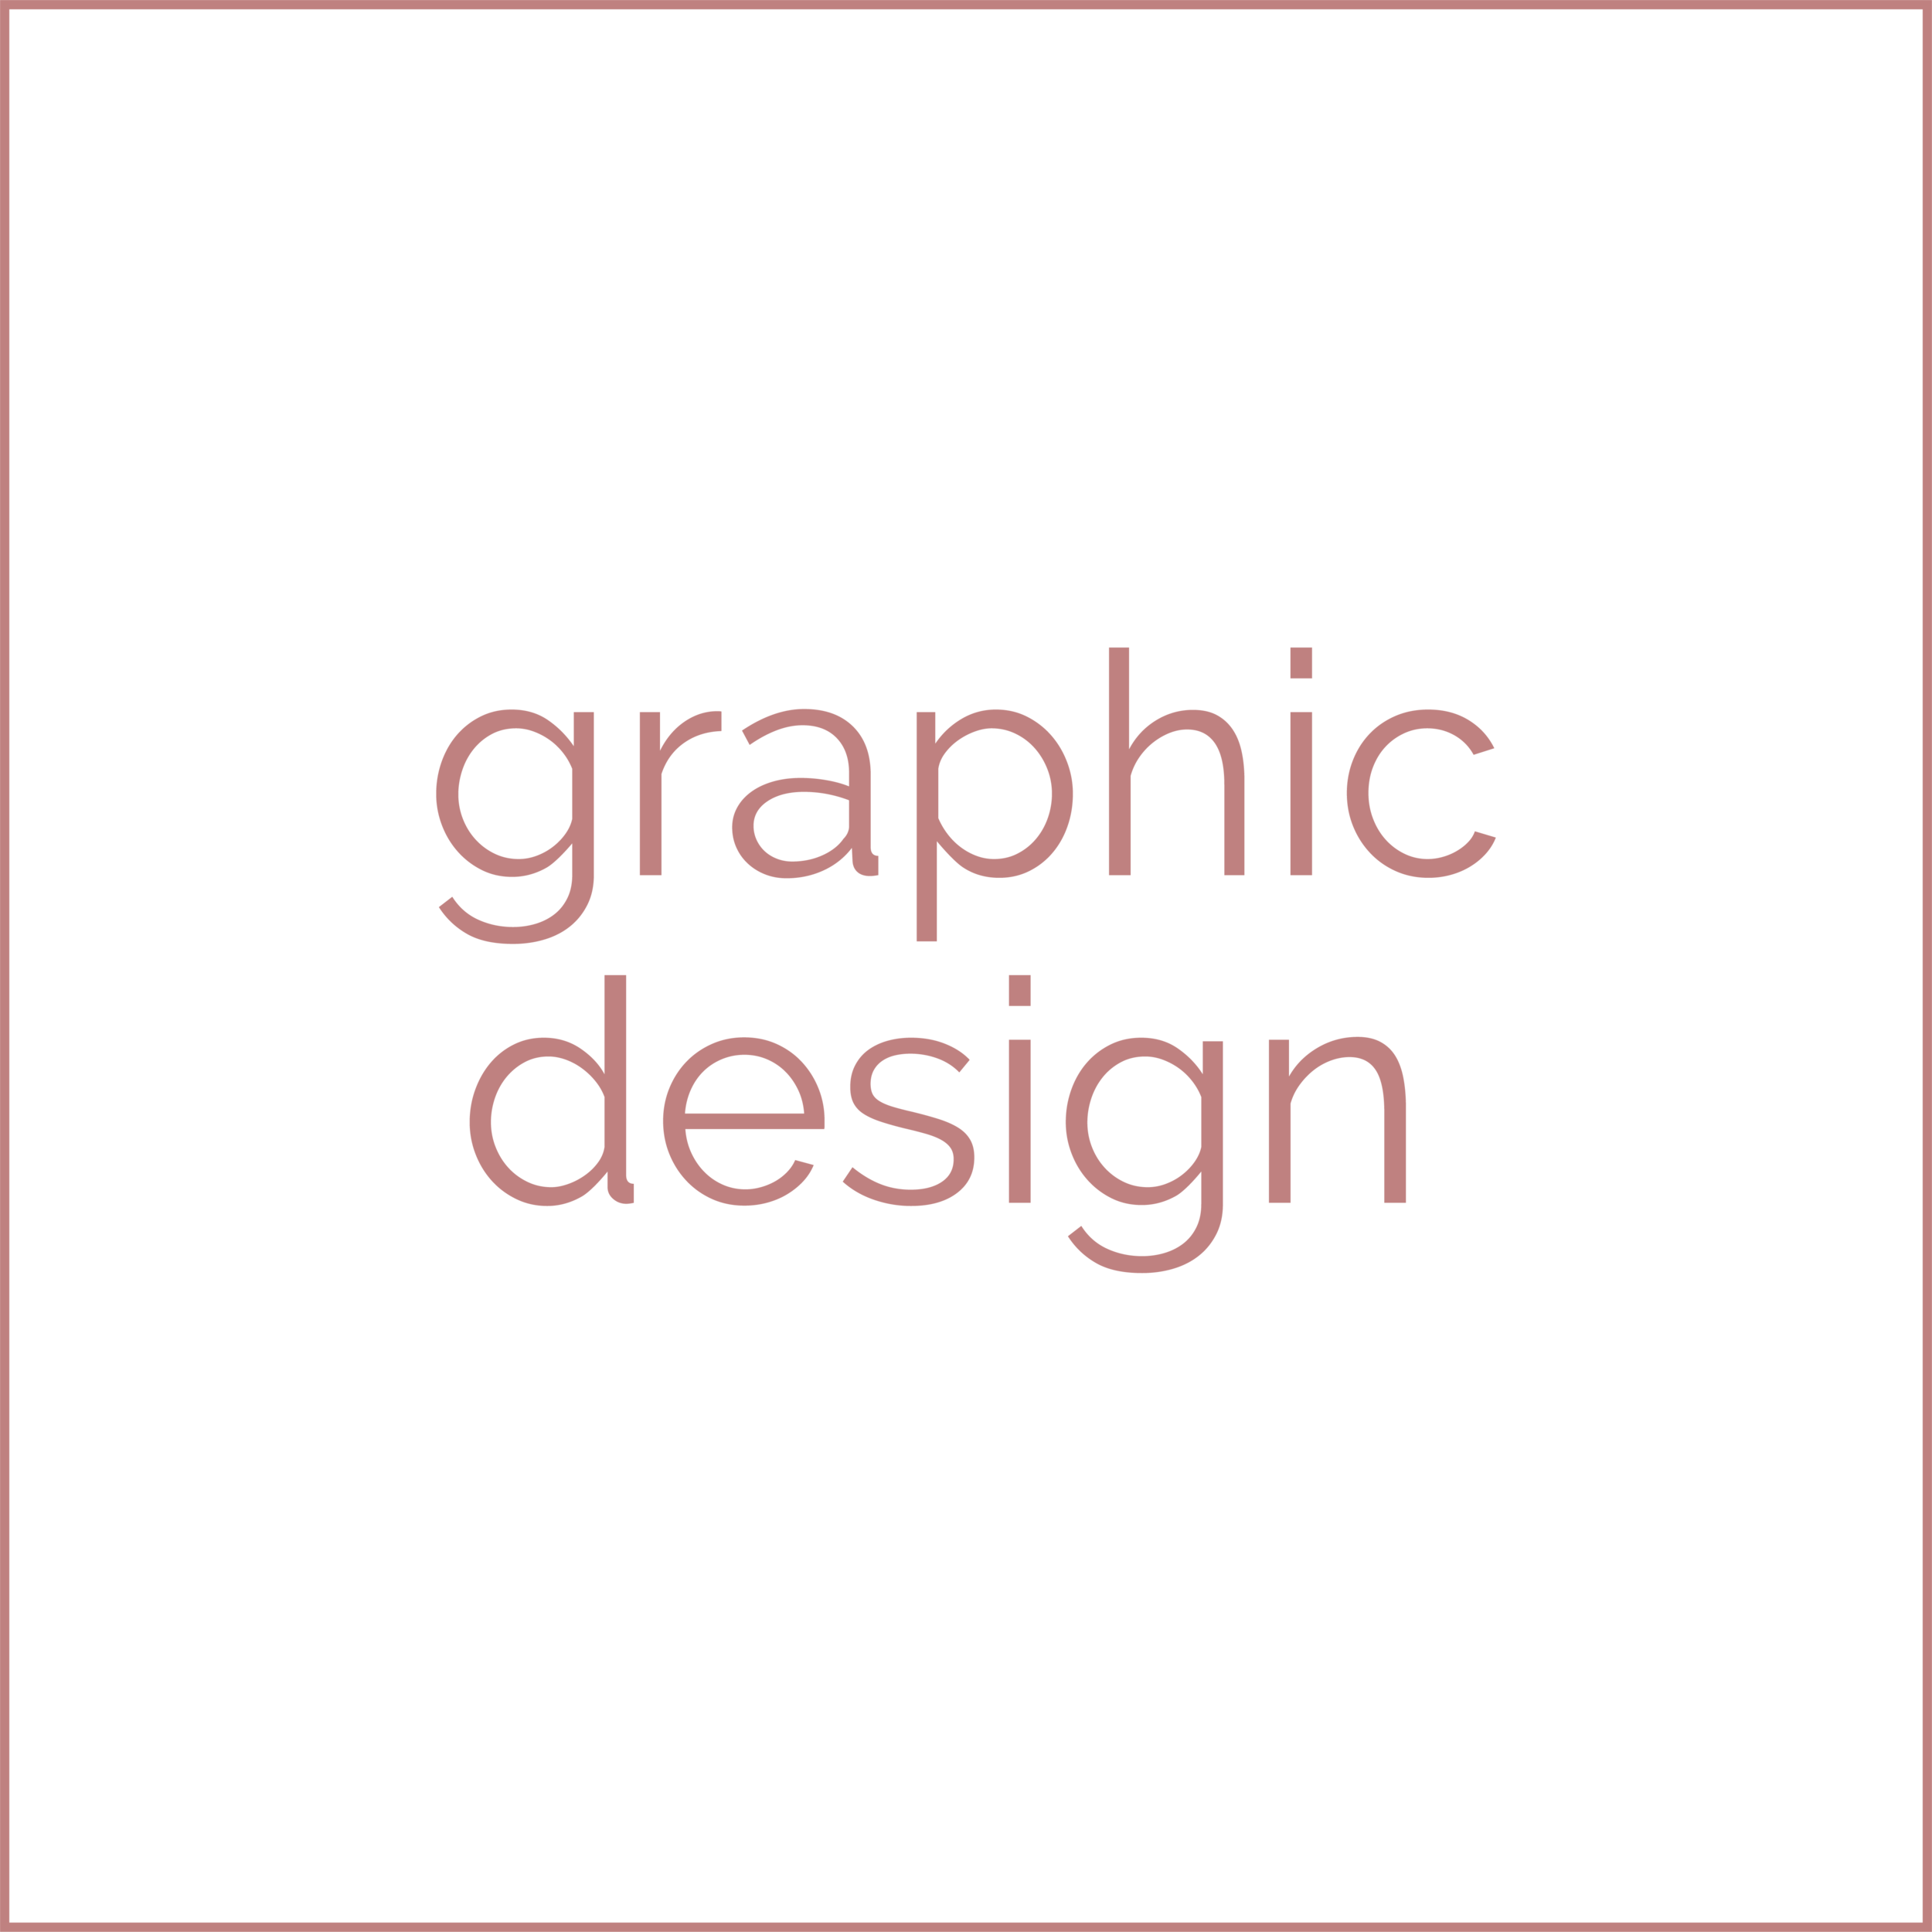 graphicdesign2.png